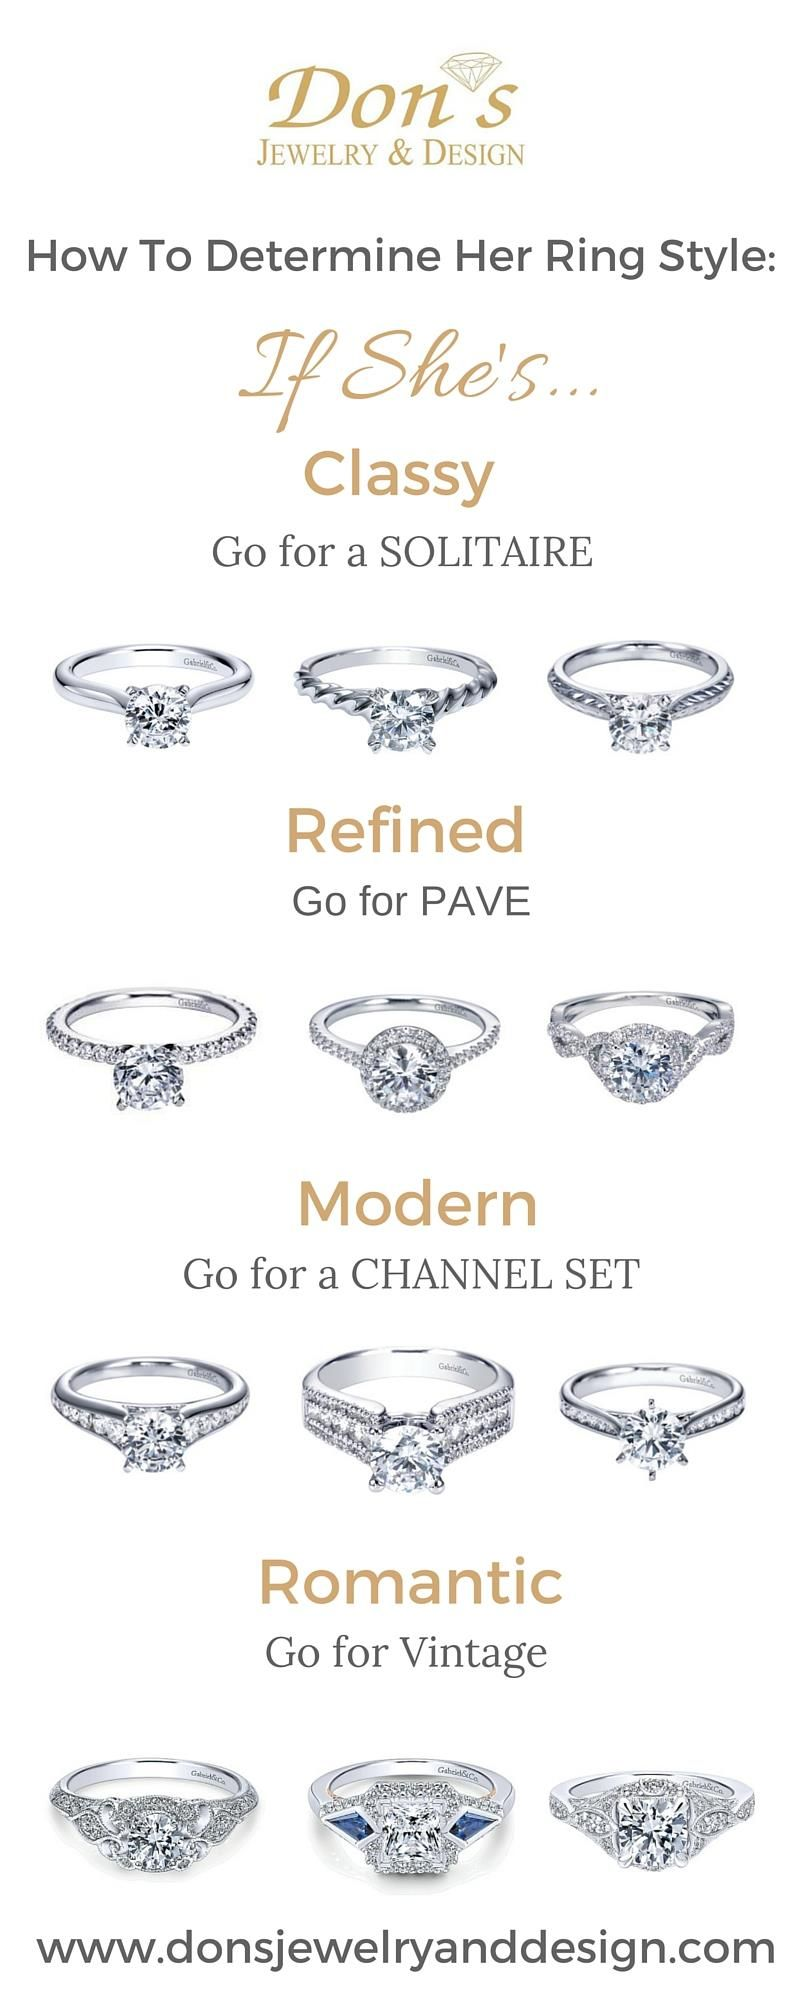 What's your ring style? Don's Jewelry & Design offers a